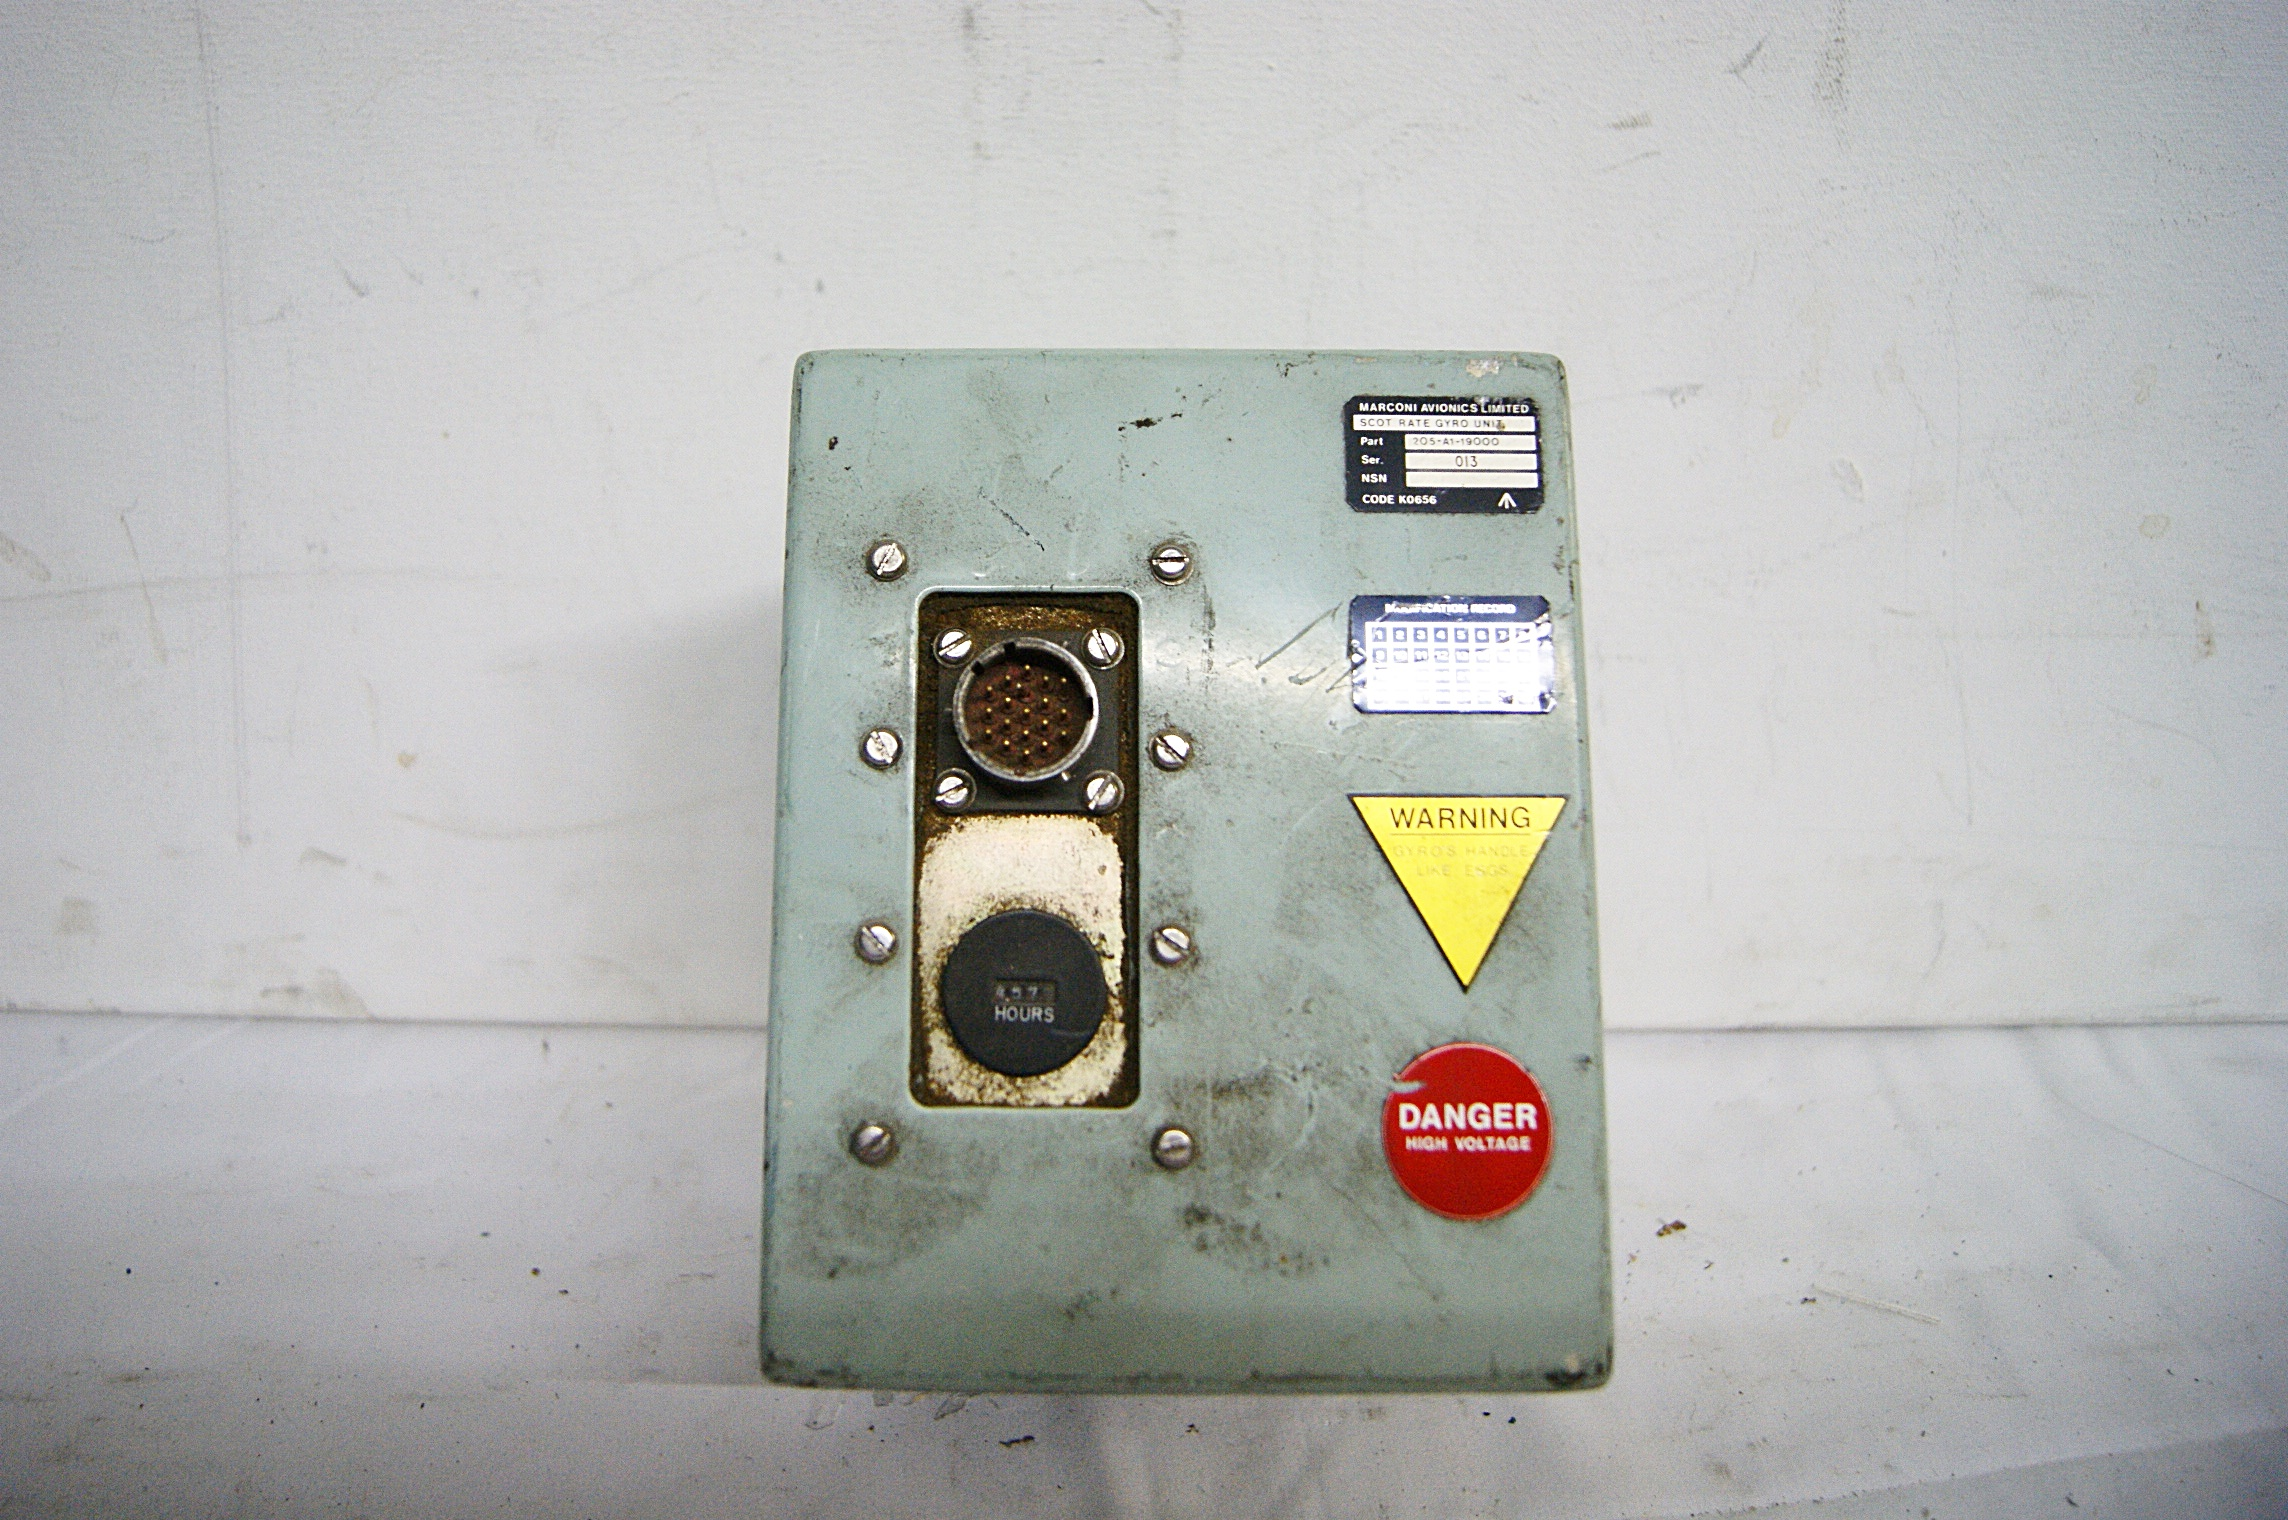 Fuse Box Prop Wiring Library G35 6810150 Submarine Control Room H 20cm X 13 14